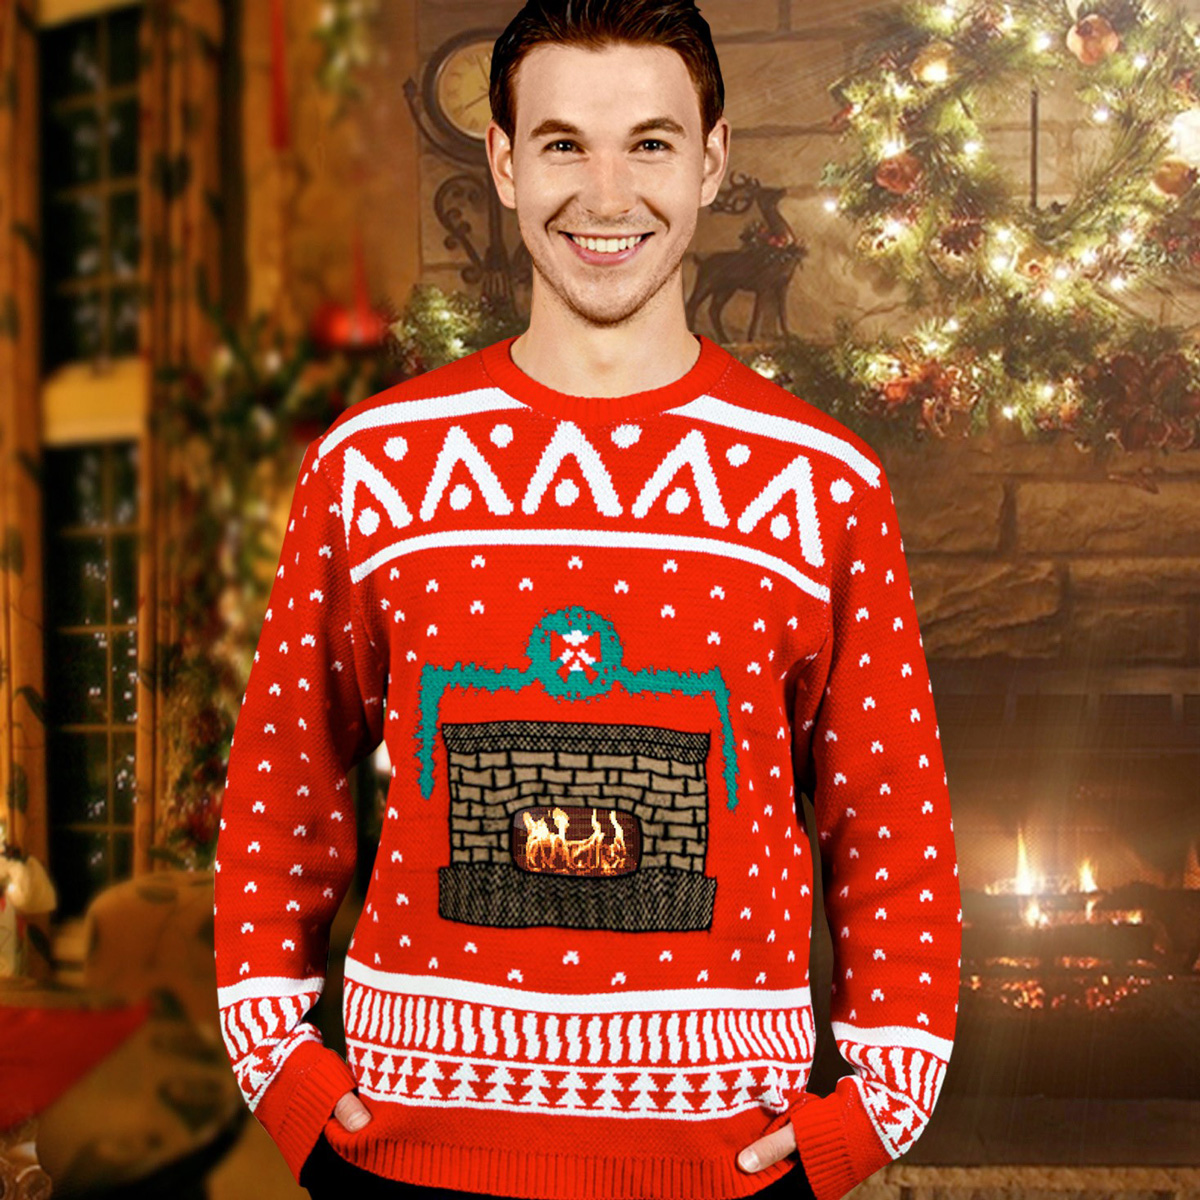 Best ugly christmas sweater ever